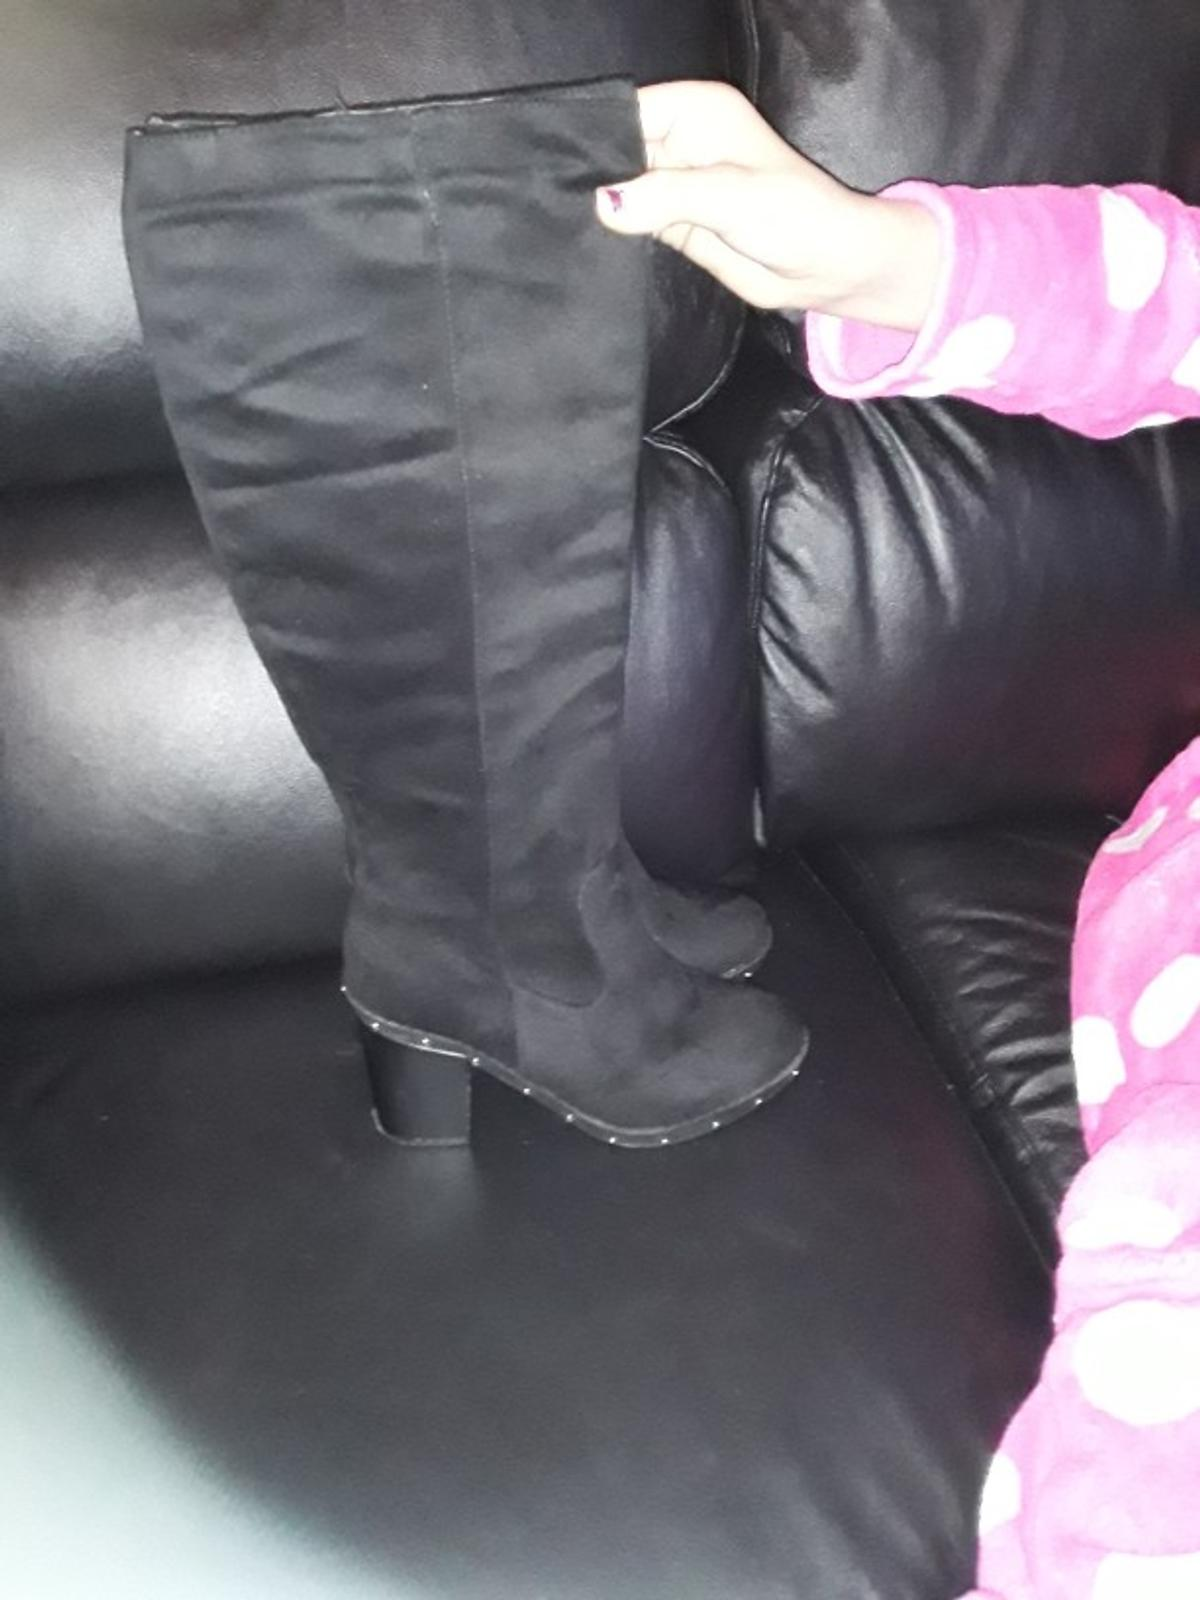 knee high boots size 5 new never worn selling as dont like them on.never worn only tryed them on.